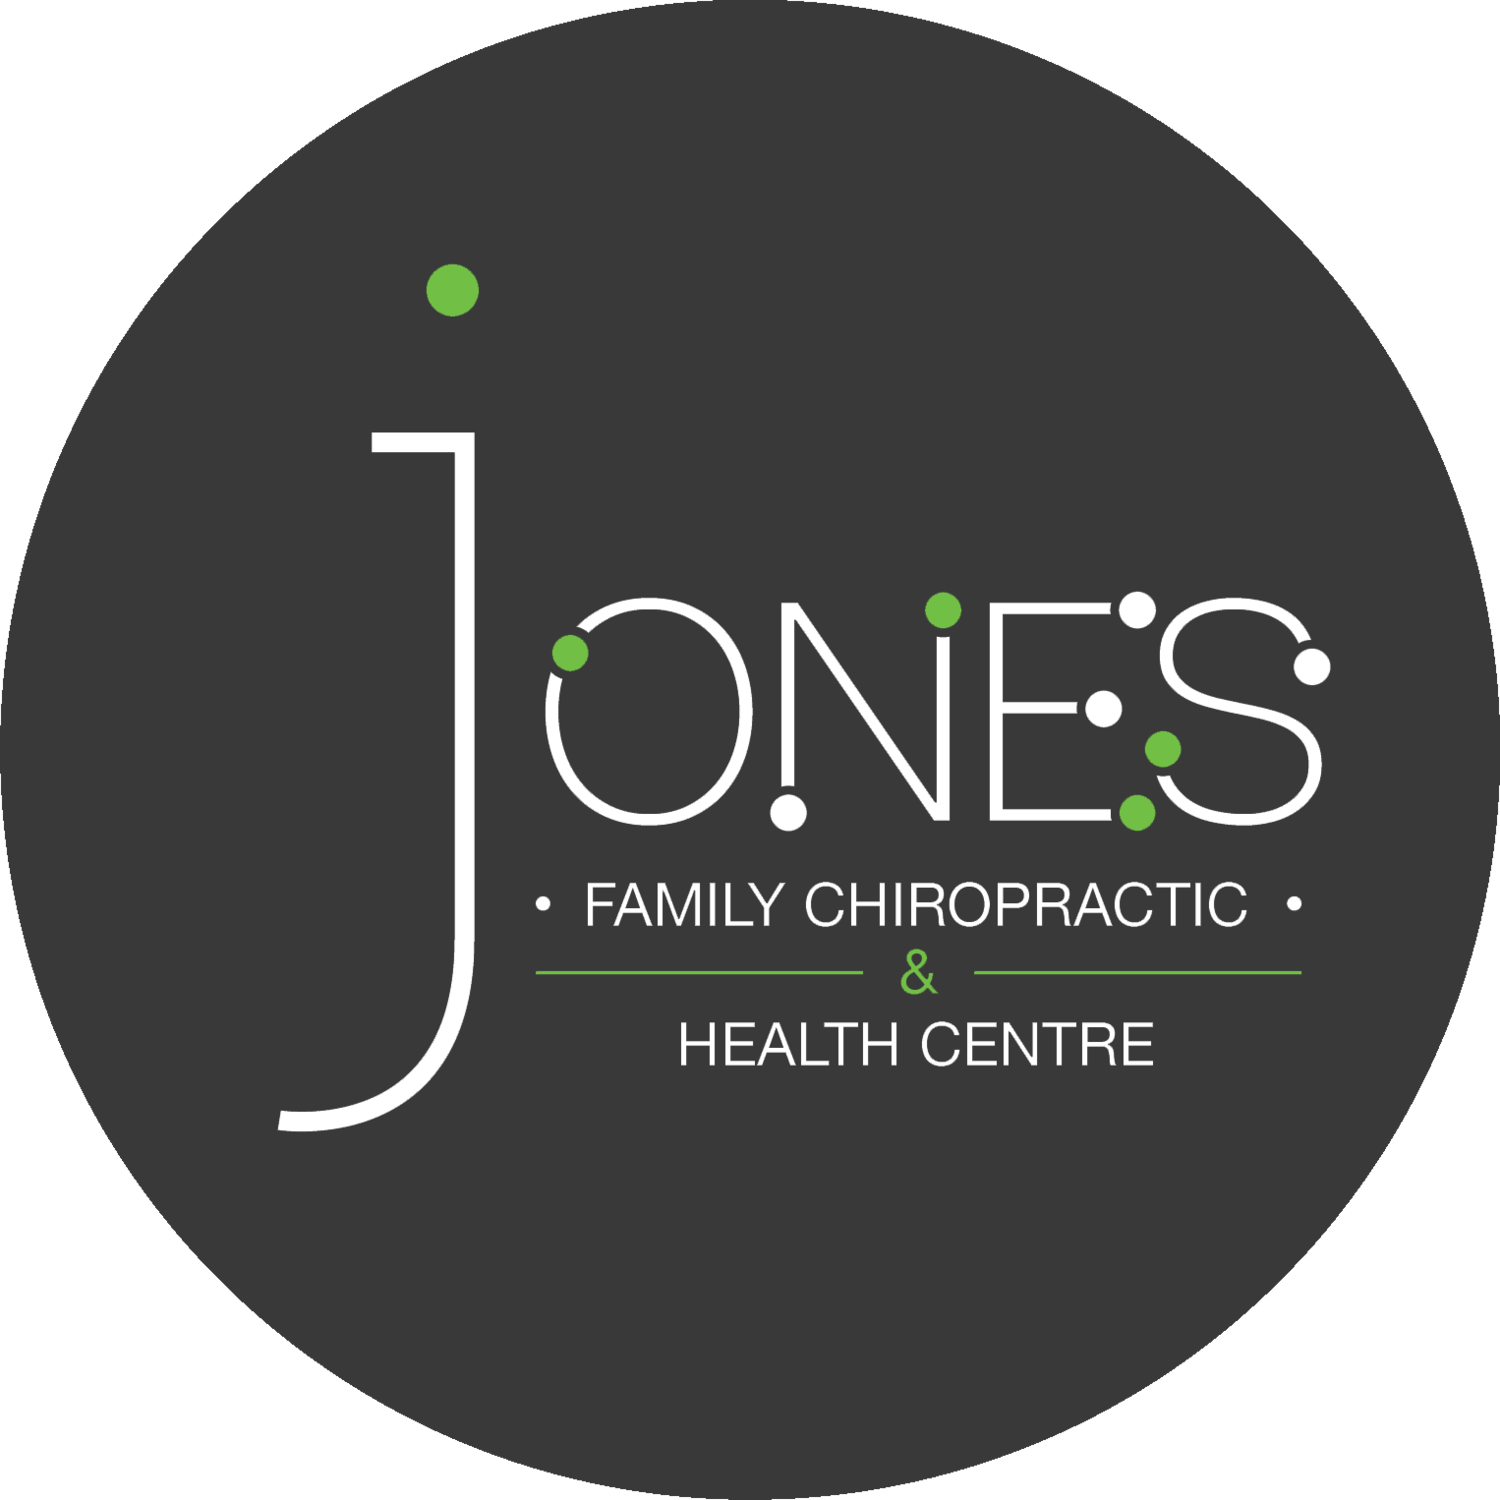 Jones Family Chiropractic and Health Centre